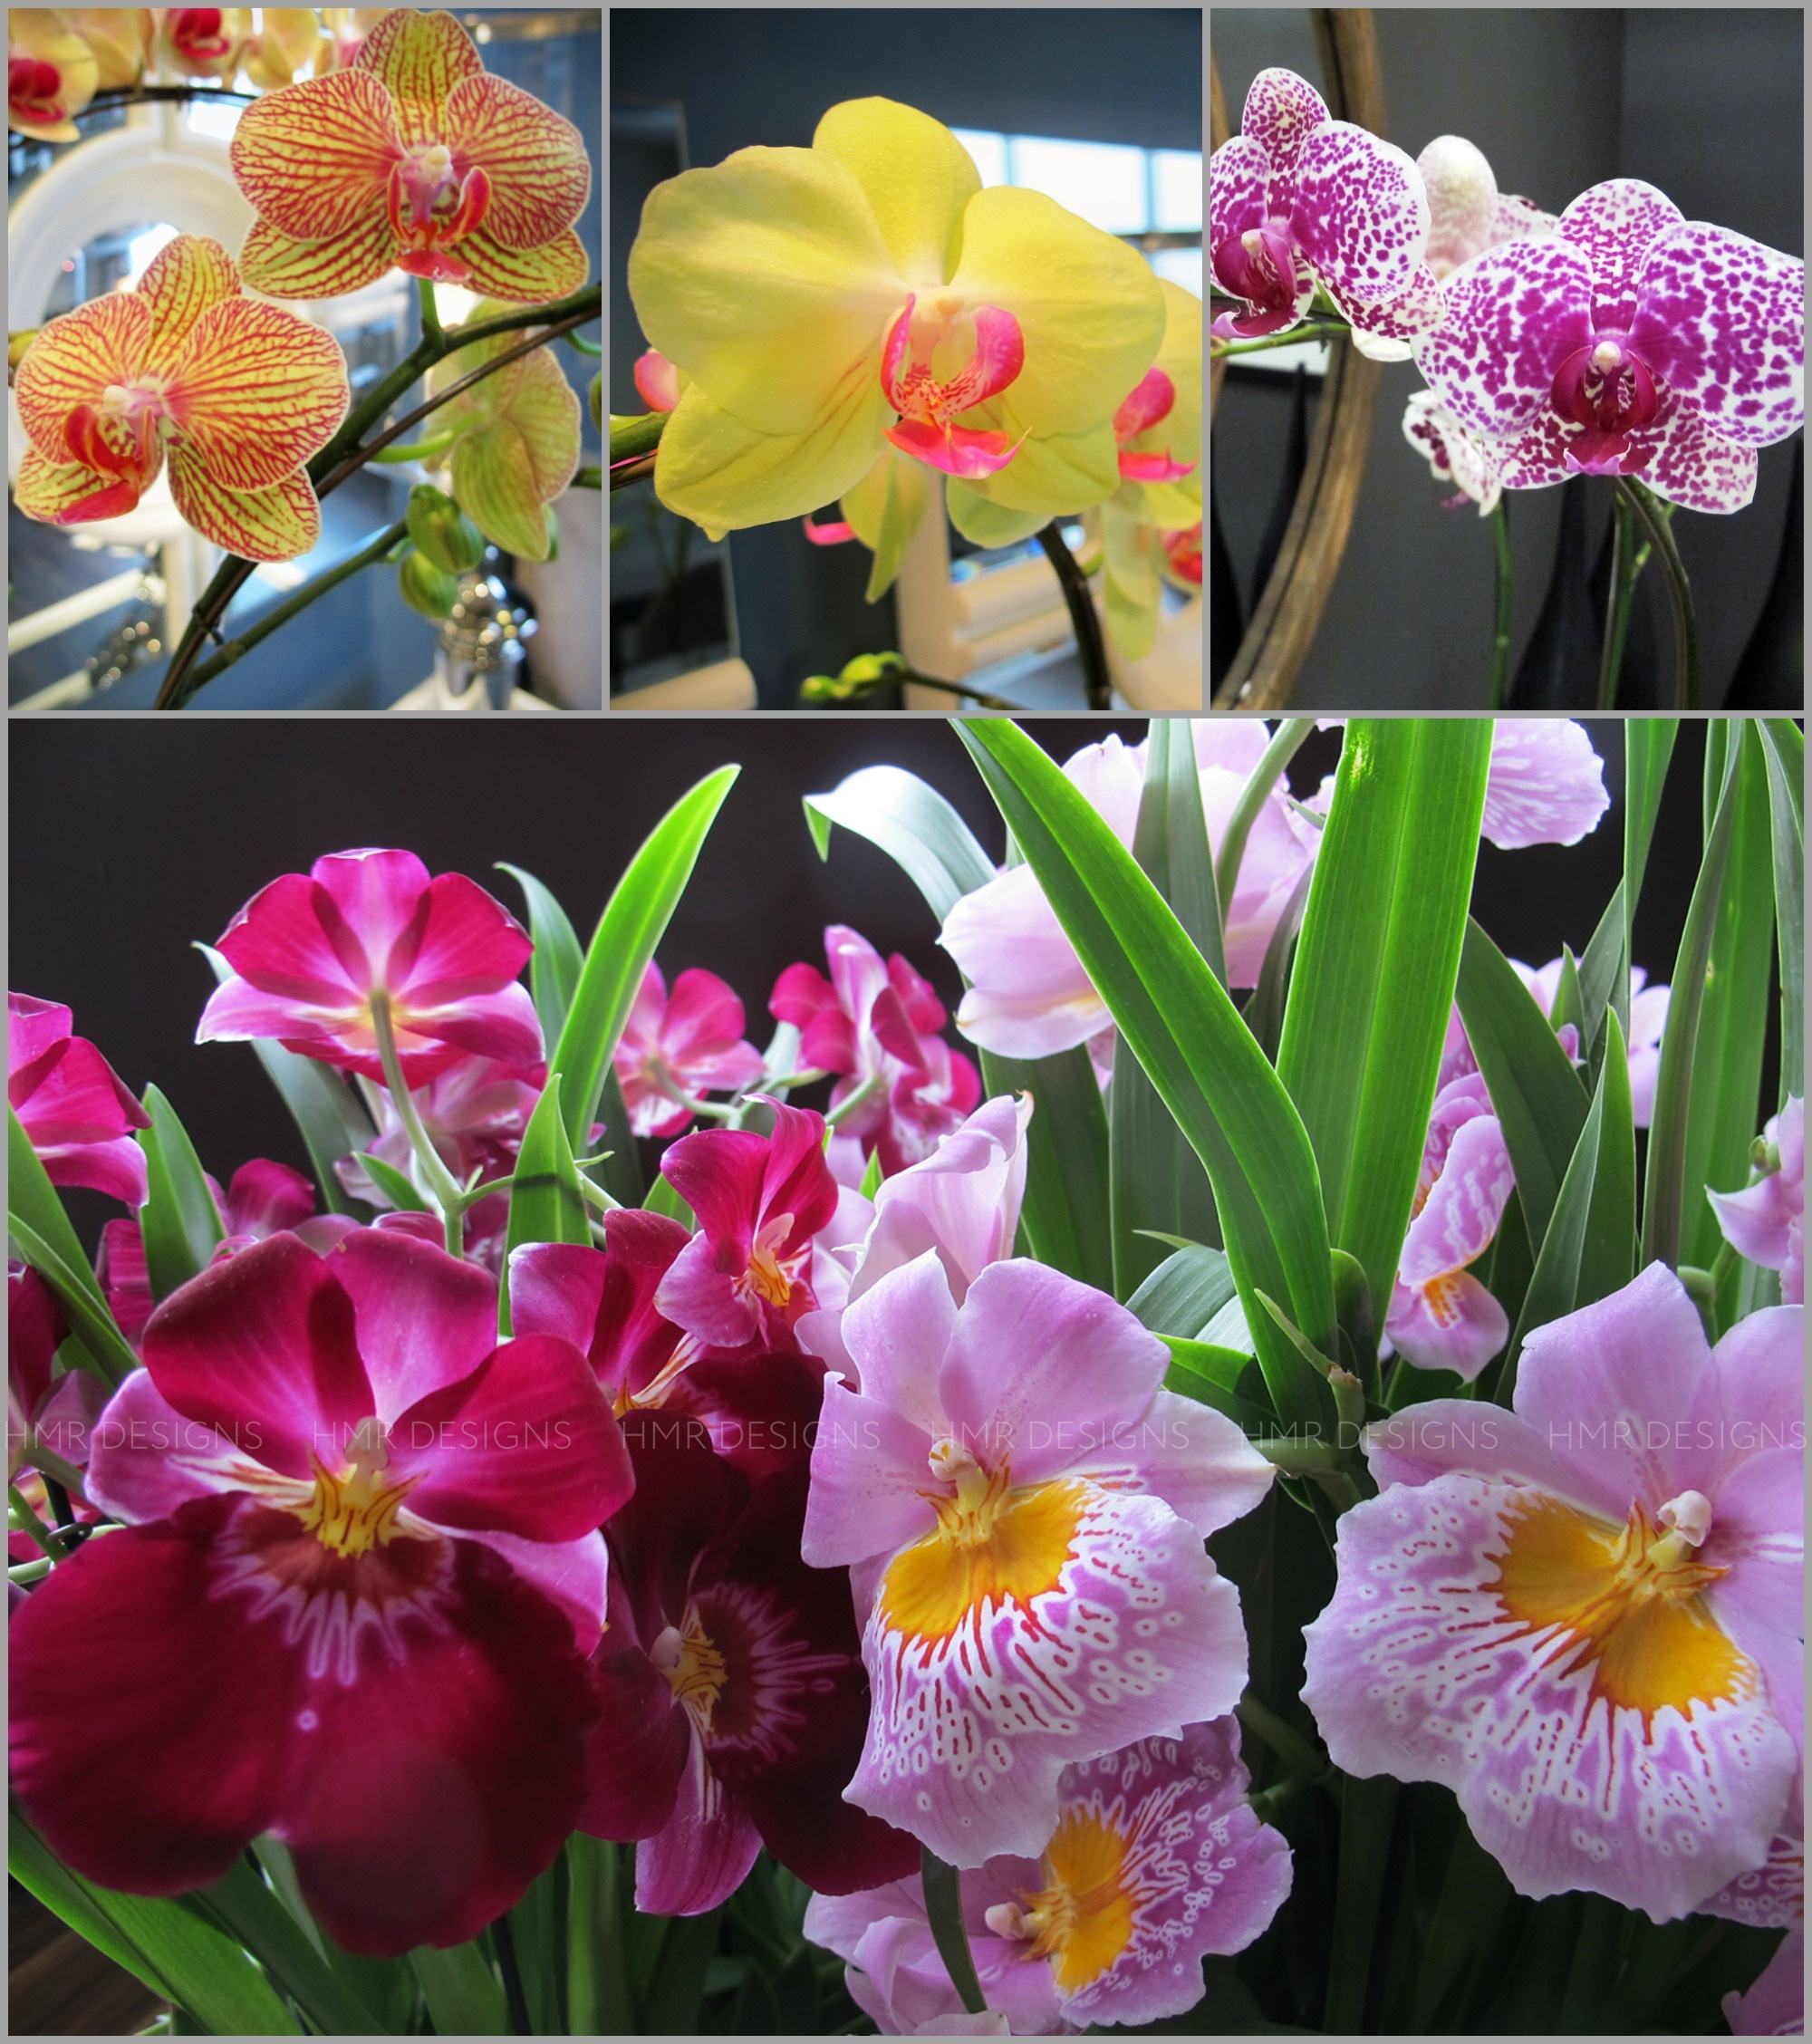 orchids at HMR Designs